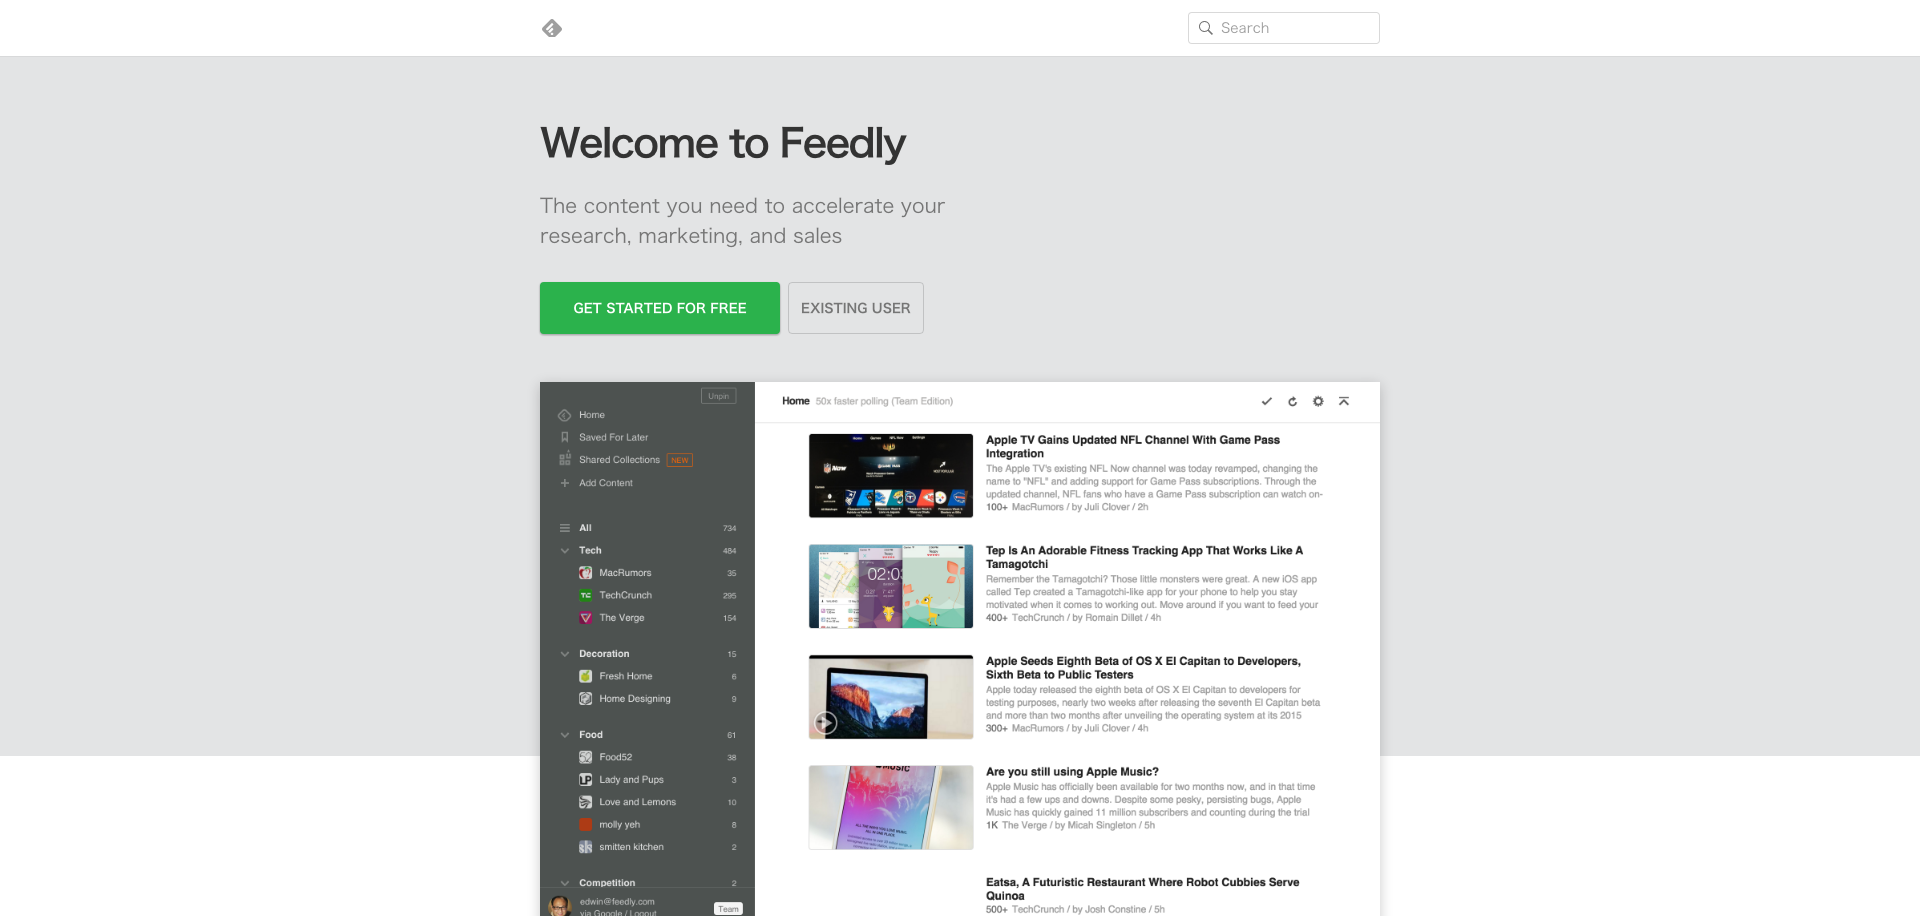 FireShot Capture 83 - Welcome to Feedly - https___feedly.com_i_welcome_logged-out